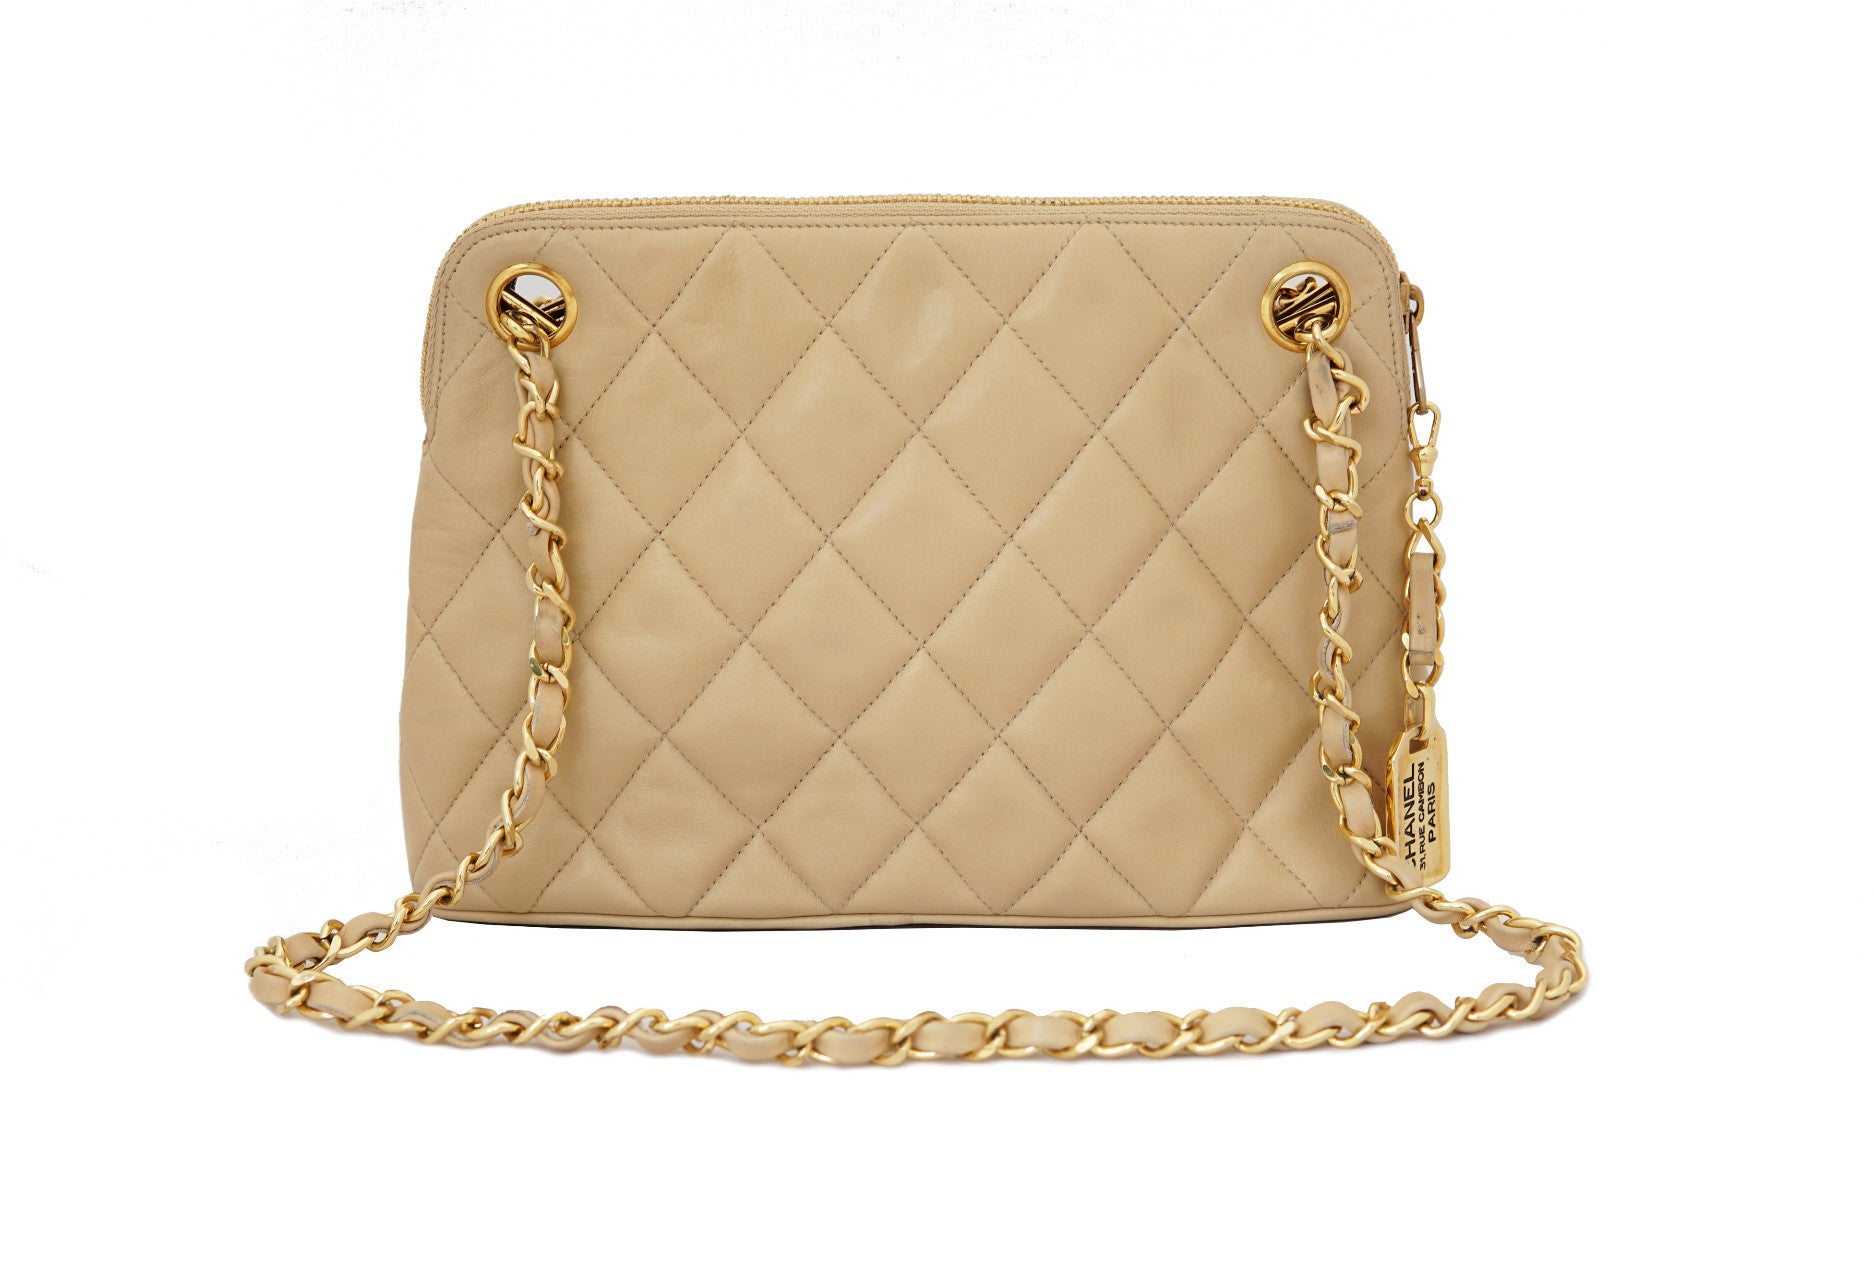 ced068b15e5a52 CHANEL VINTAGE SHOULDER BAG - Quilted Lambskin Beige - Vintage District